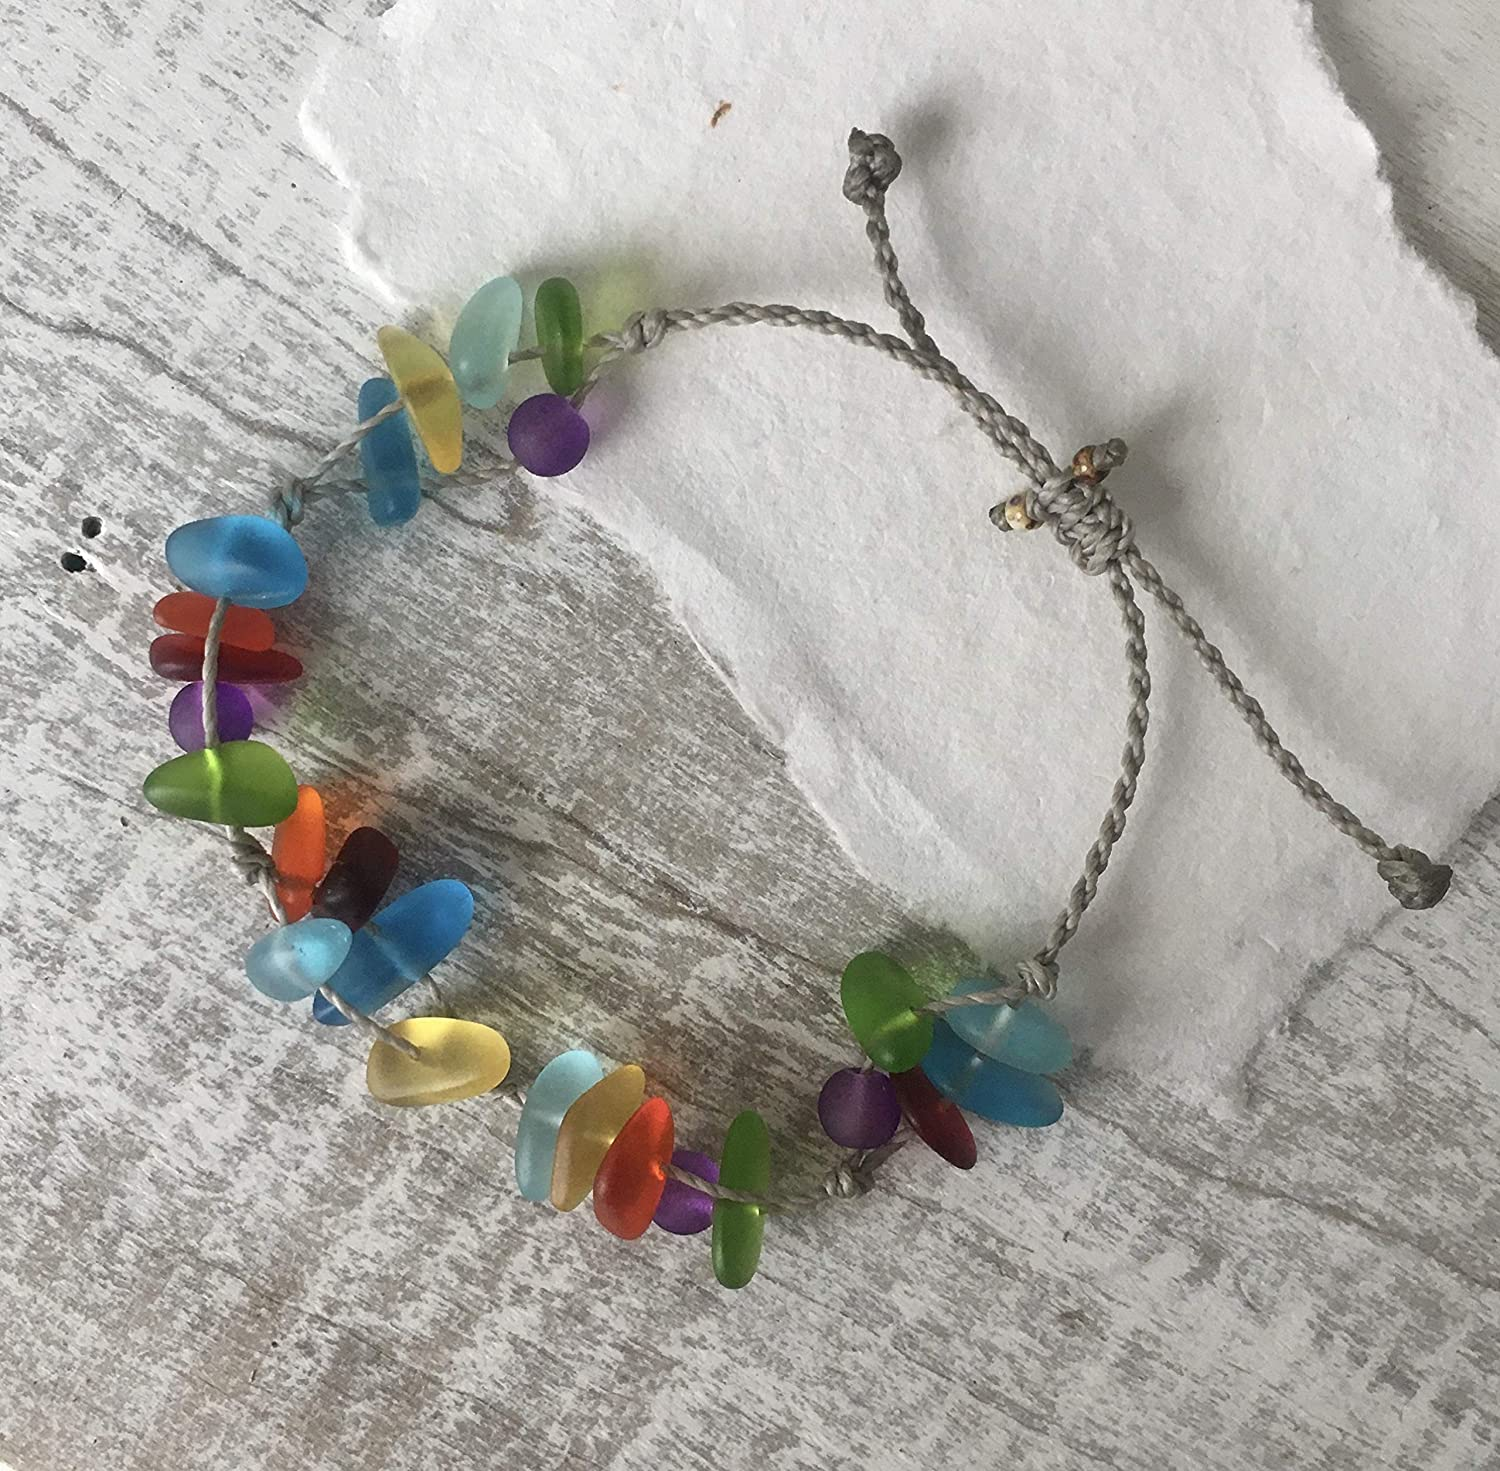 Great Pride Gift Chakra Colors Artisan Made Colorful Sea Glass Bracelet or Anklet in Every Color of the Rainbow